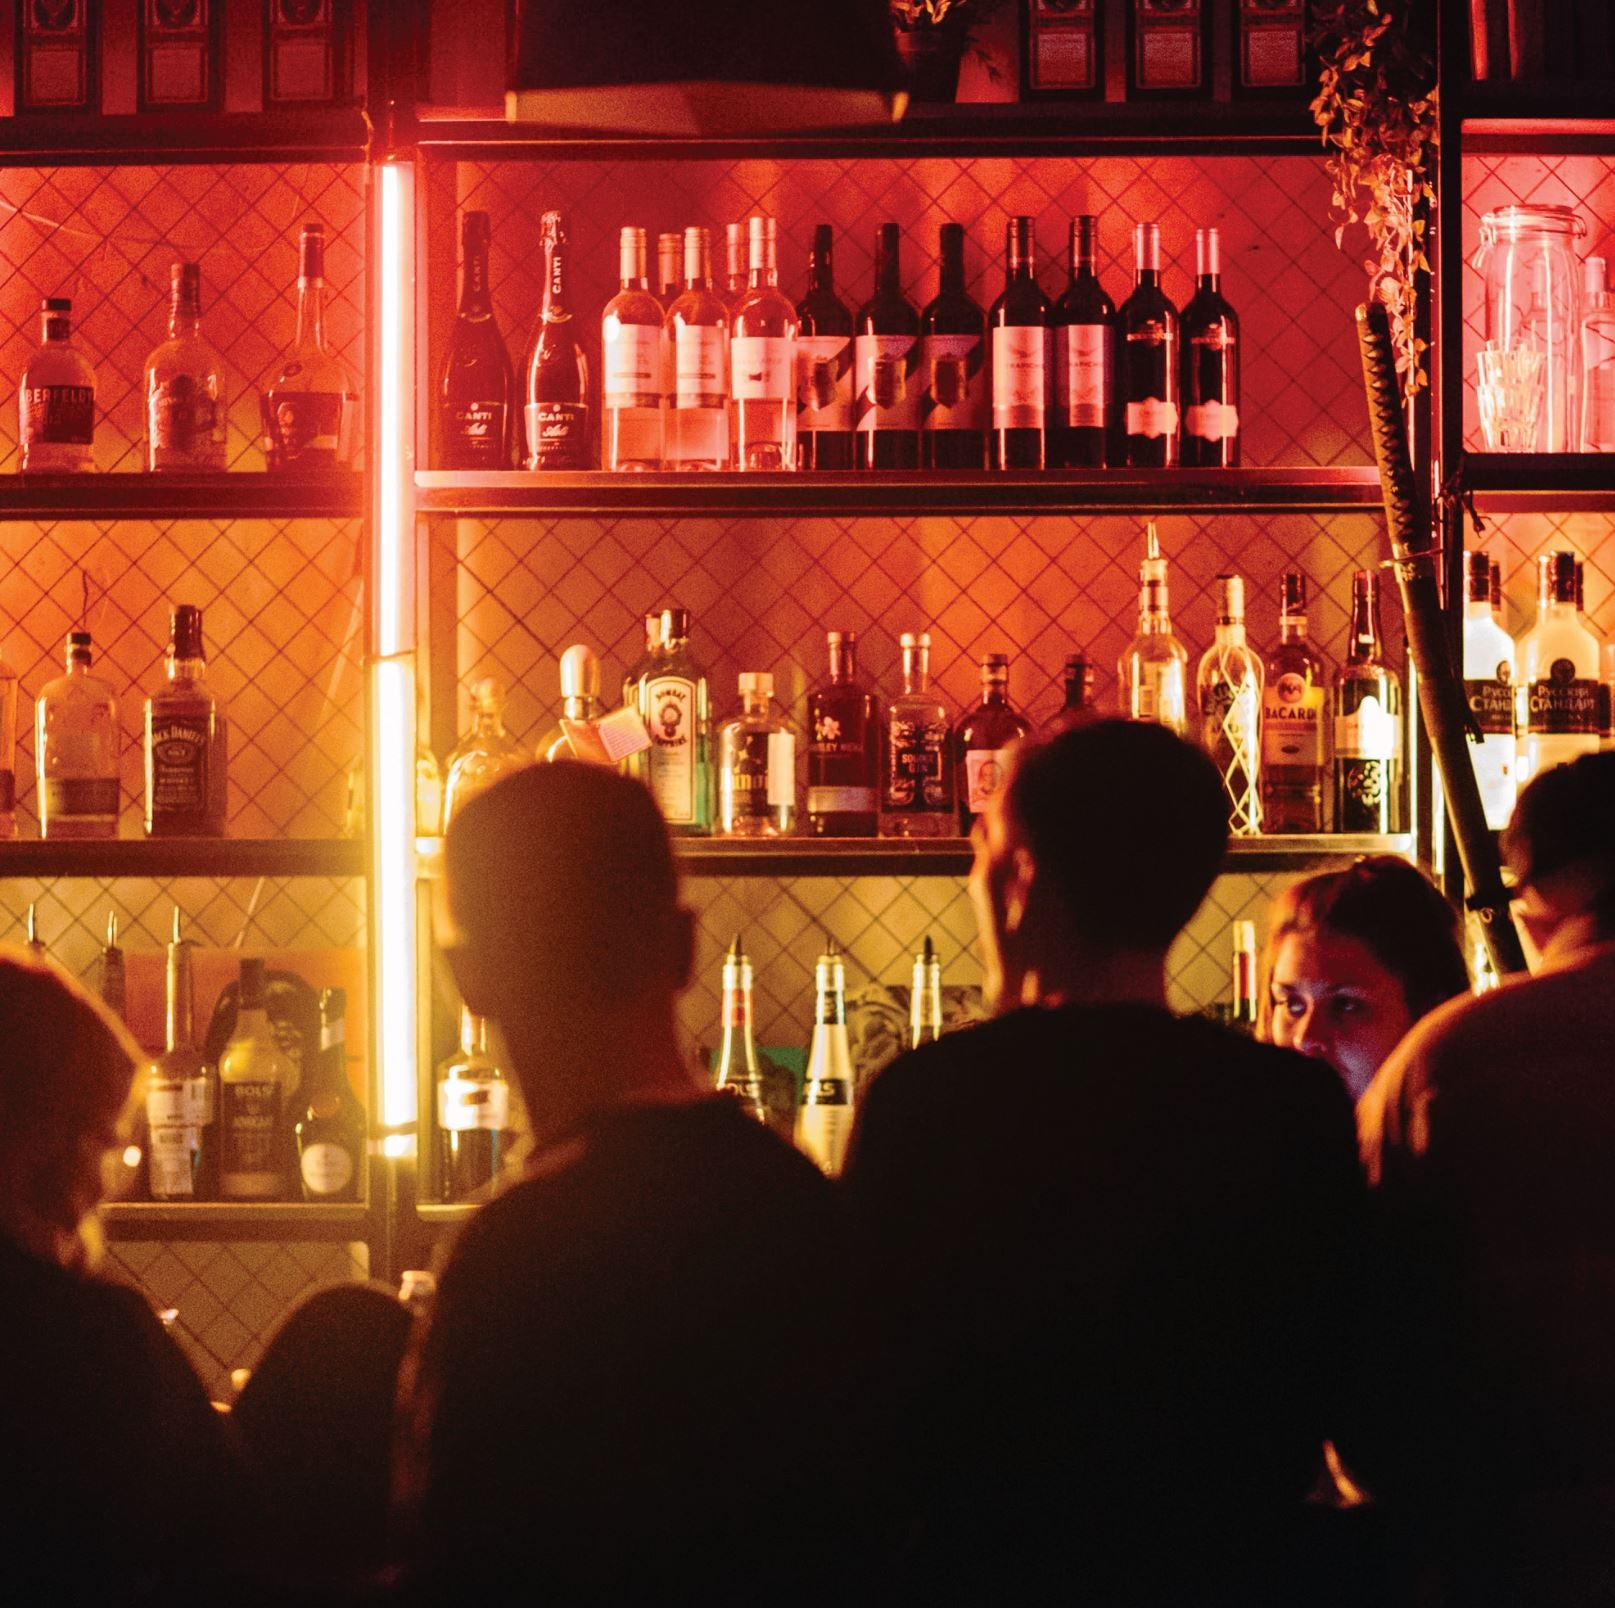 Breaking Booze - a Bartender's Perspective on Finding Balance